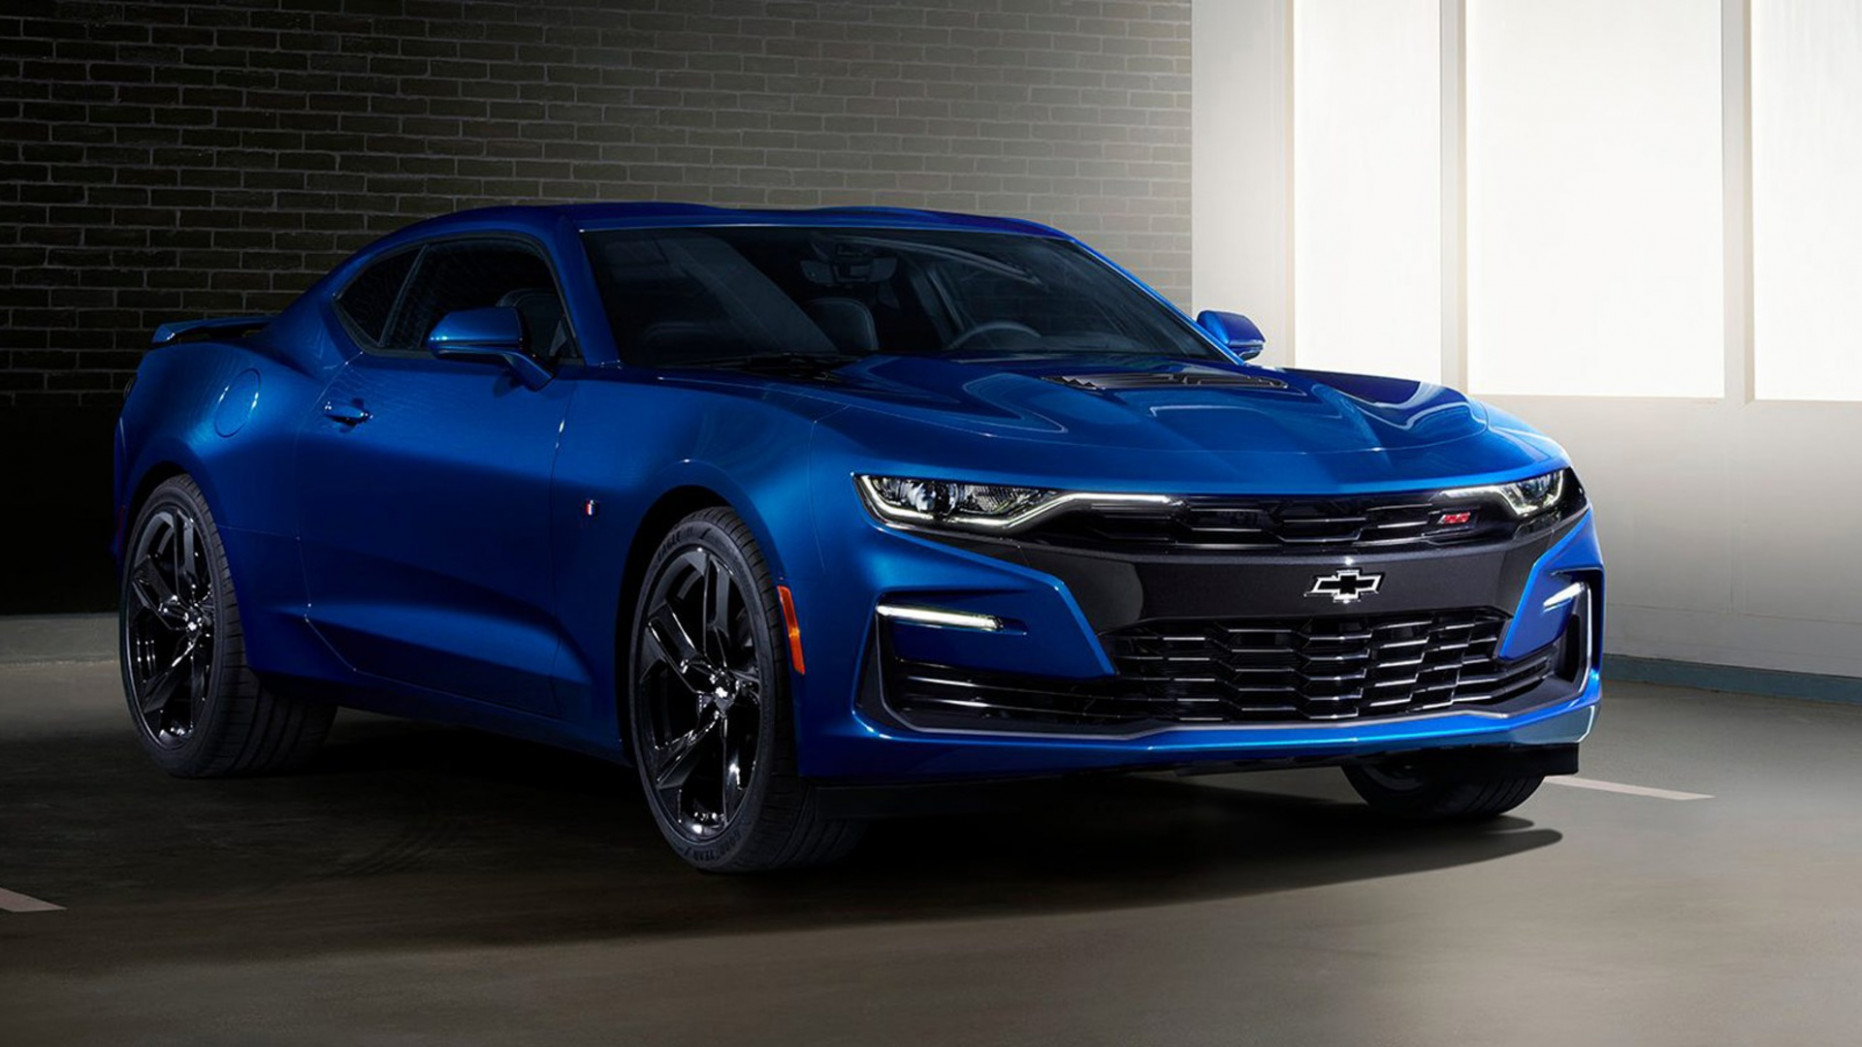 Chevrolet testing waters for two Camaro hybrids, including V-9 - 2020 chevrolet hybrid